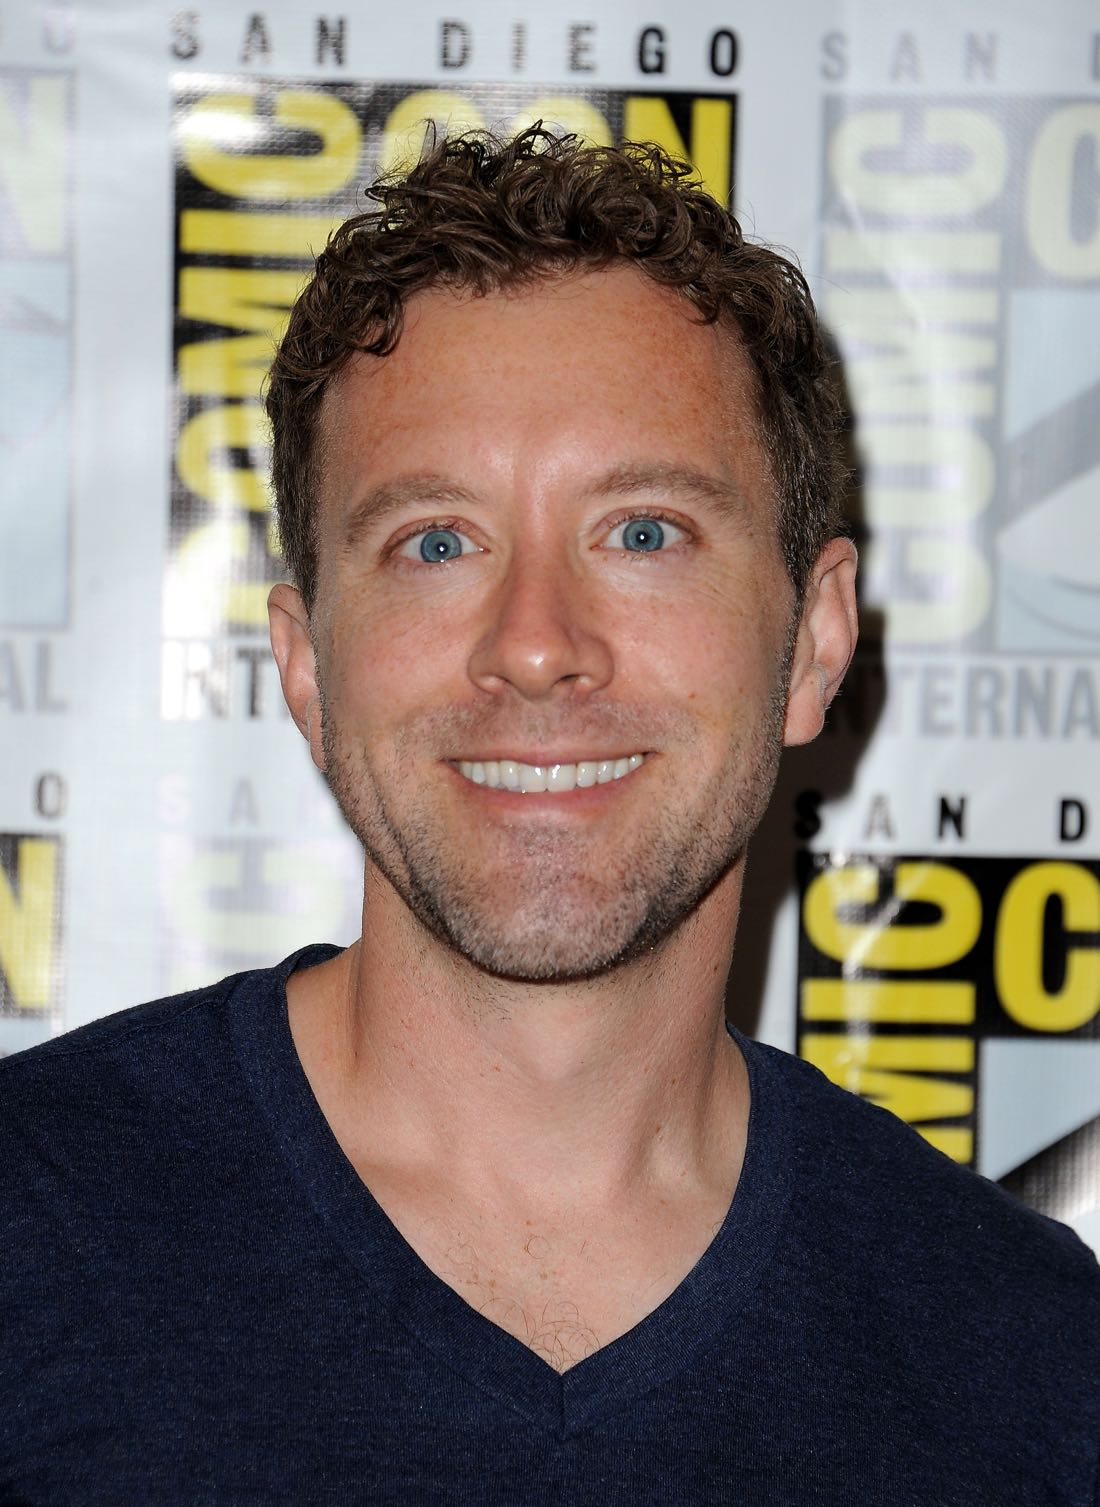 FOX FANFARE AT SAN DIEGO COMIC-CON © 2016: BONES cast member T.J. Thyne during the BONES press room on Friday, July 22 at the FOX FANFARE AT SAN DIEGO COMIC-CON © 2016. CR: Scott Kirkland/FOX © 2016 FOX BROADCASTING